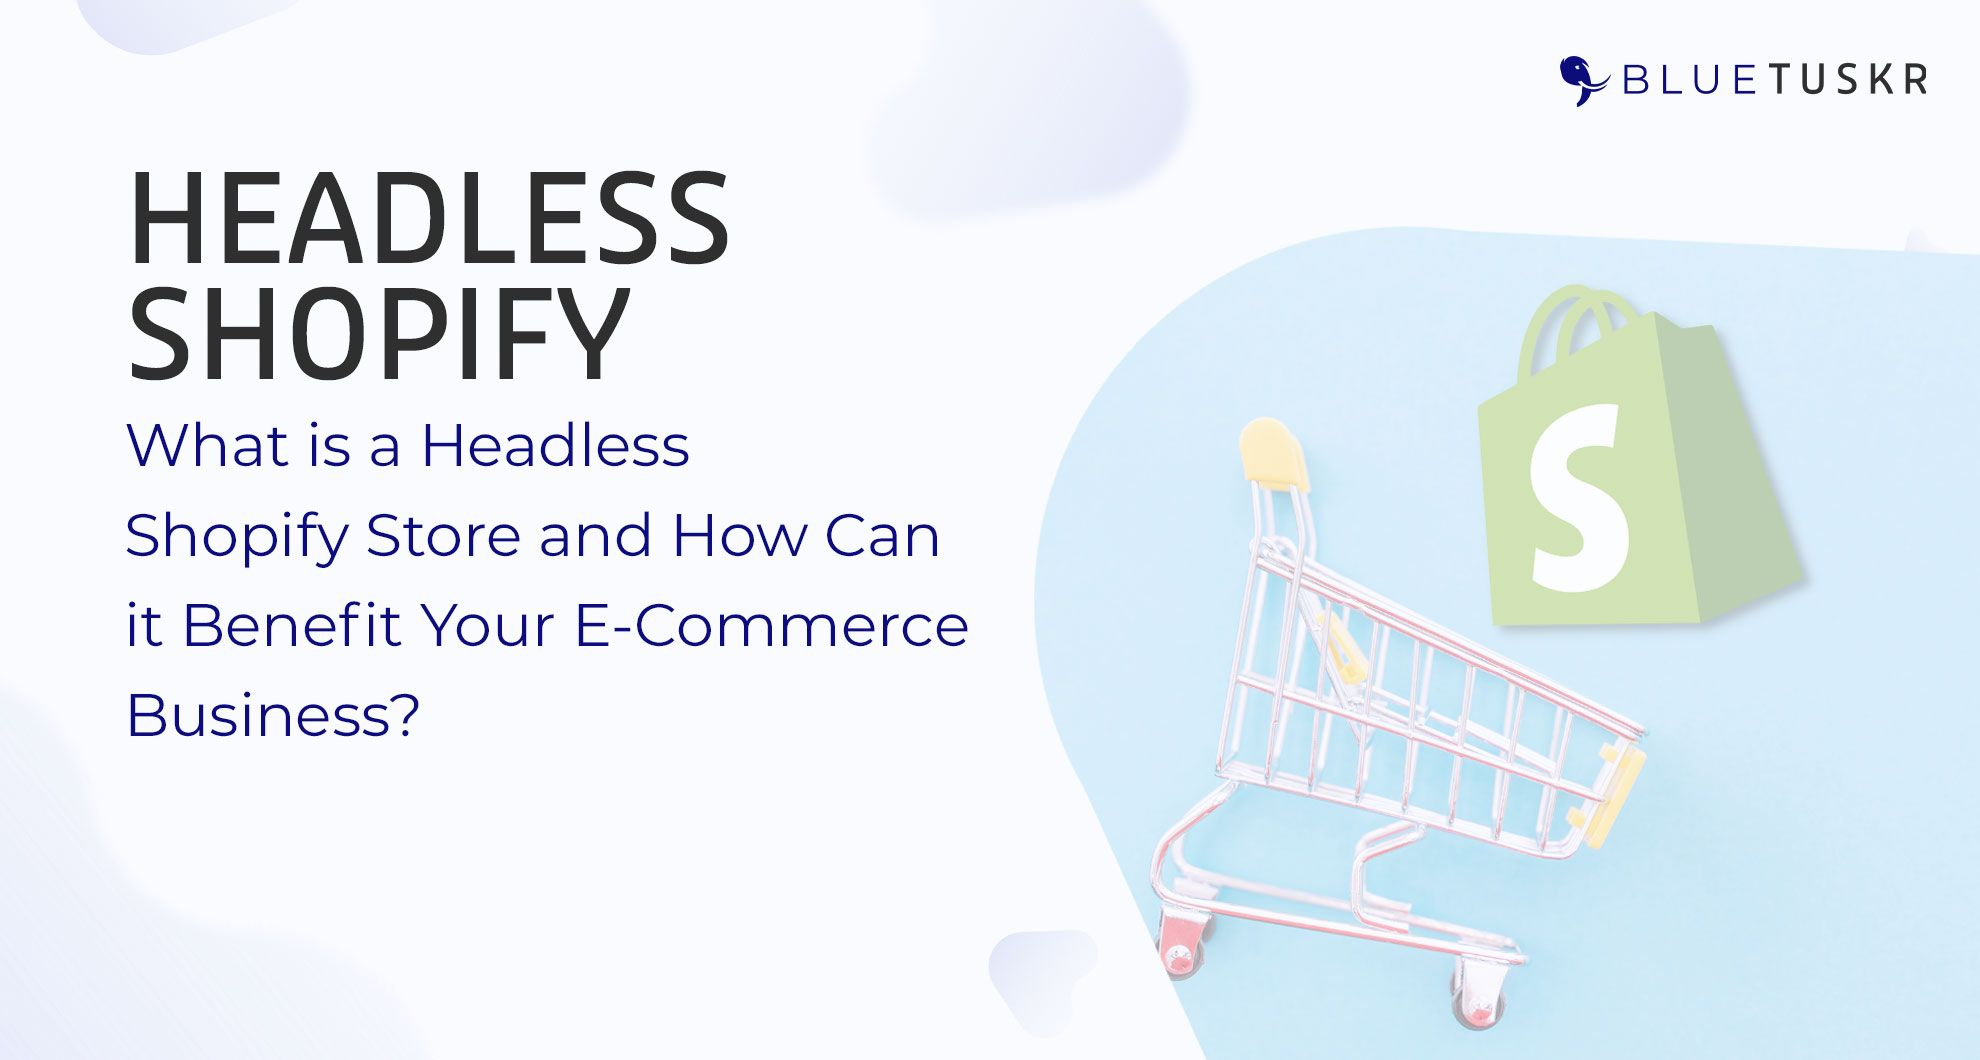 What is a Headless Shopify Store and How Can it Benefit Your E-Commerce Business?